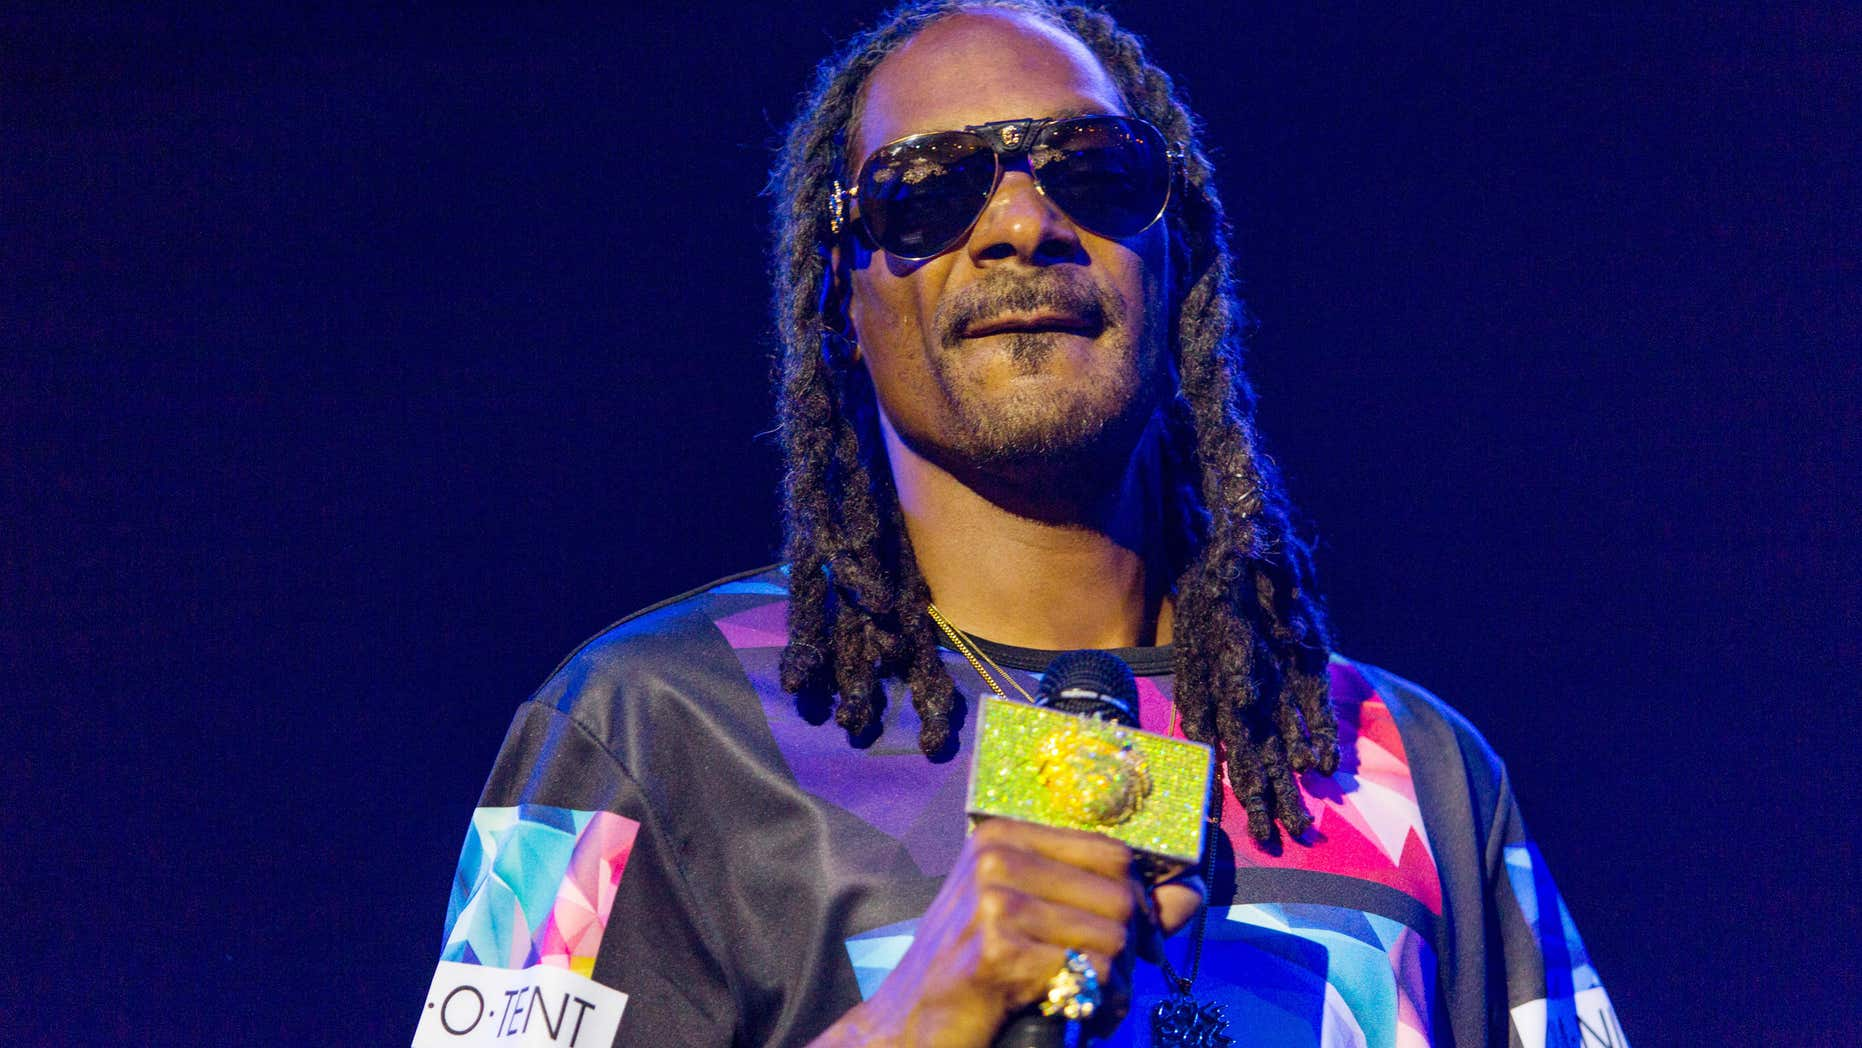 FILE - In this Sat., Sept. 26, 2015 file photo, Snoop Dogg performs during the Life is Beautiful festival in Las Vegas.